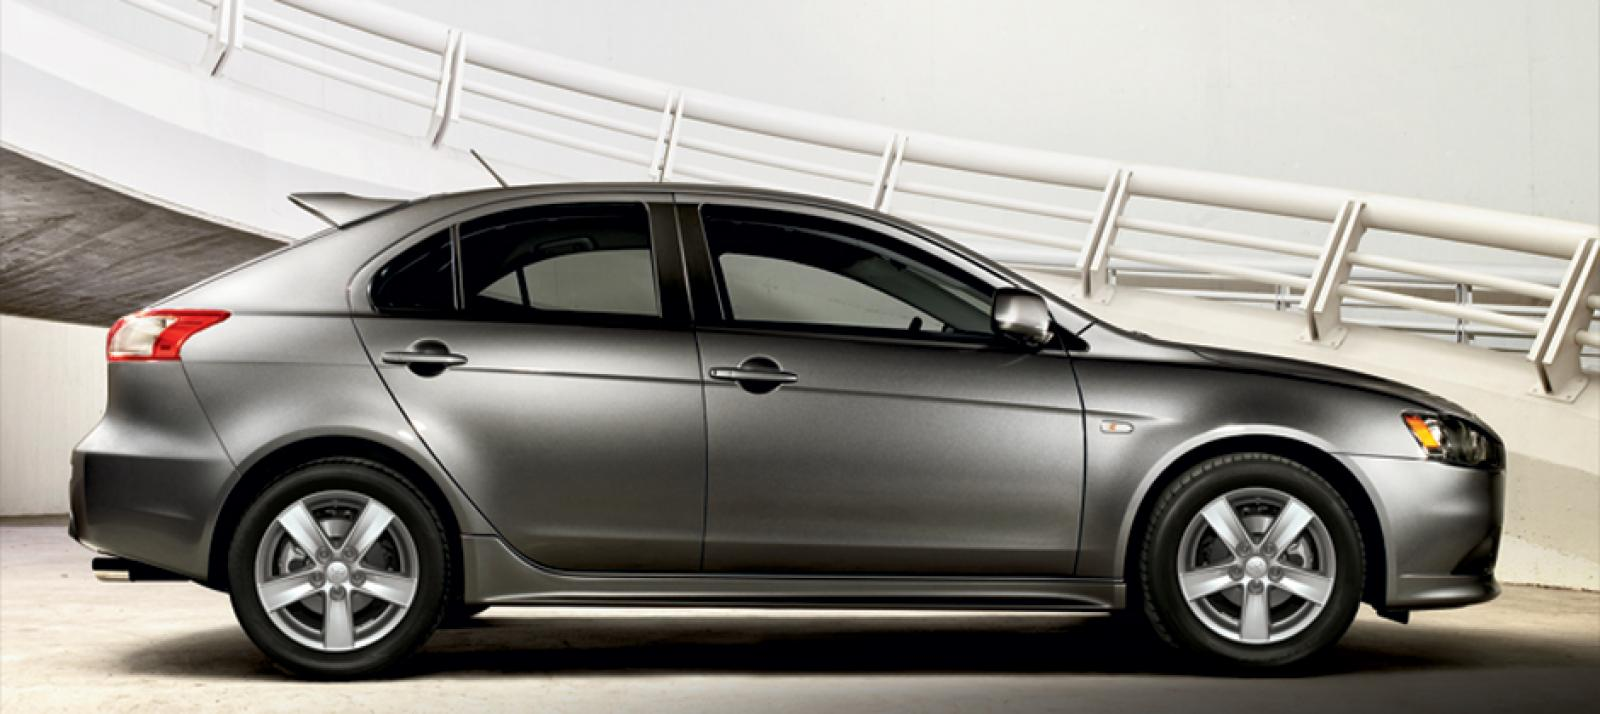 2013 mitsubishi lancer sportback information and photos. Black Bedroom Furniture Sets. Home Design Ideas